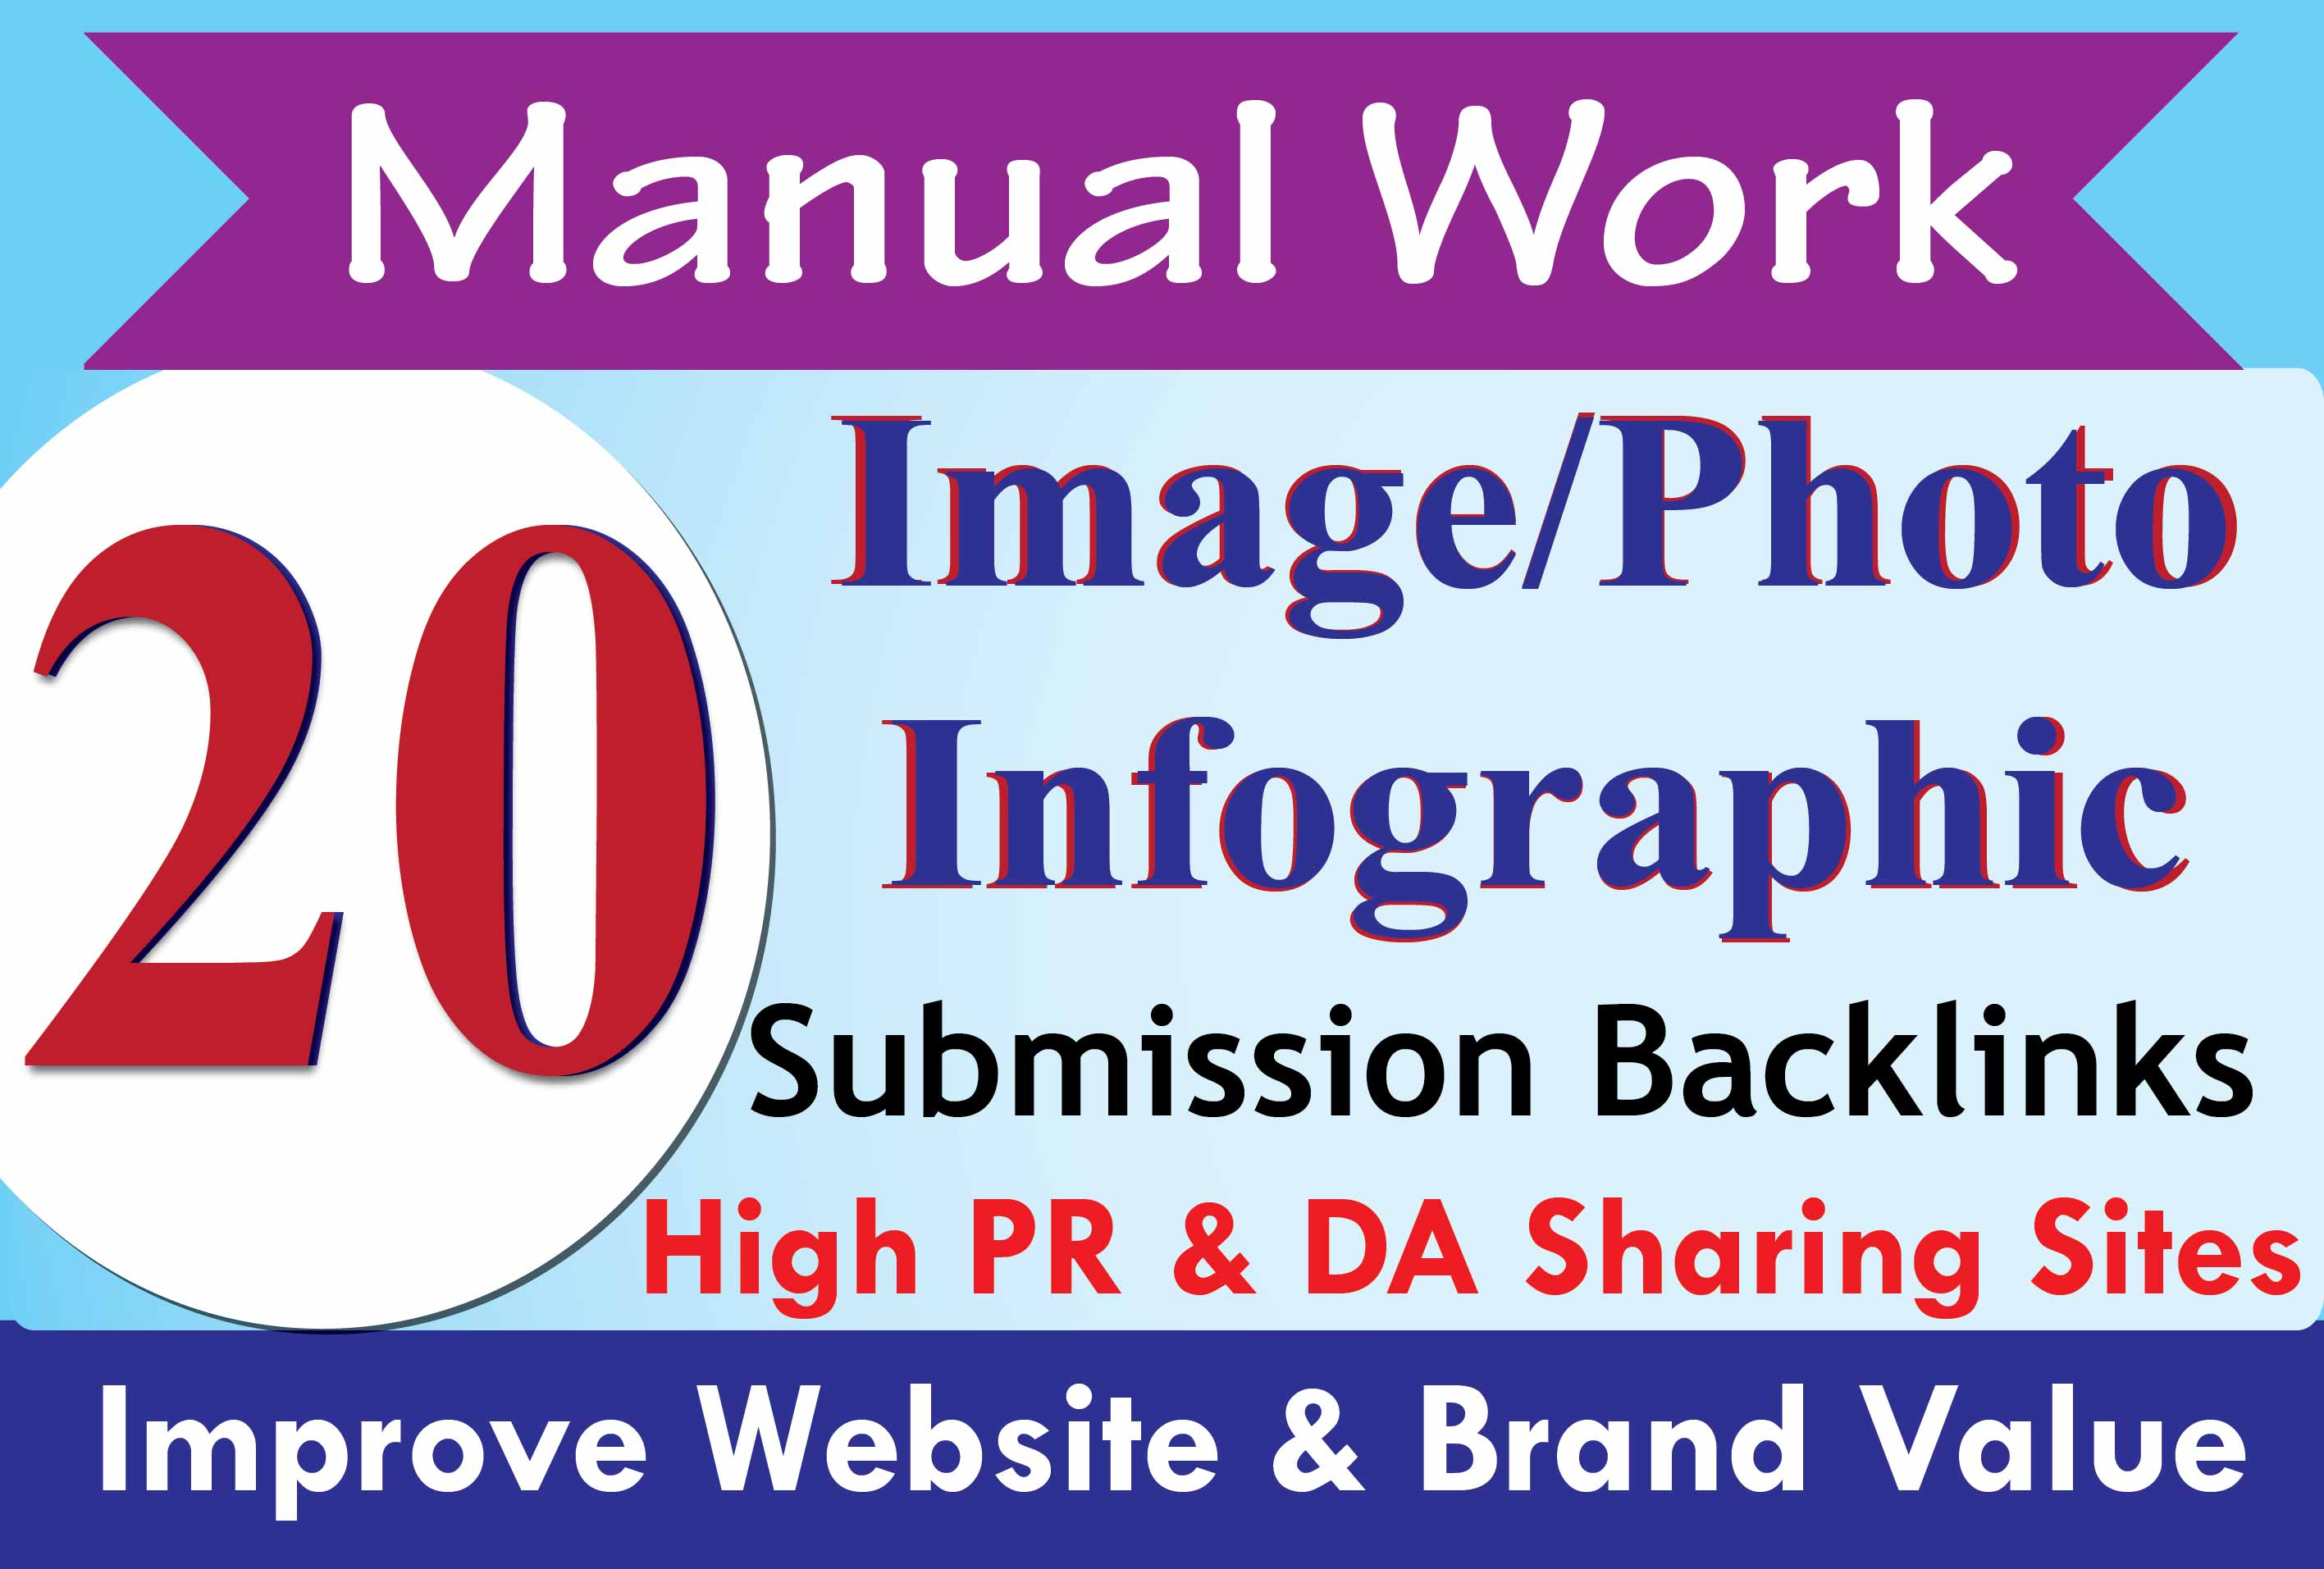 Get Extreme SEO infographic or image submission to high PR photo sharing sites with SEO Backlinks